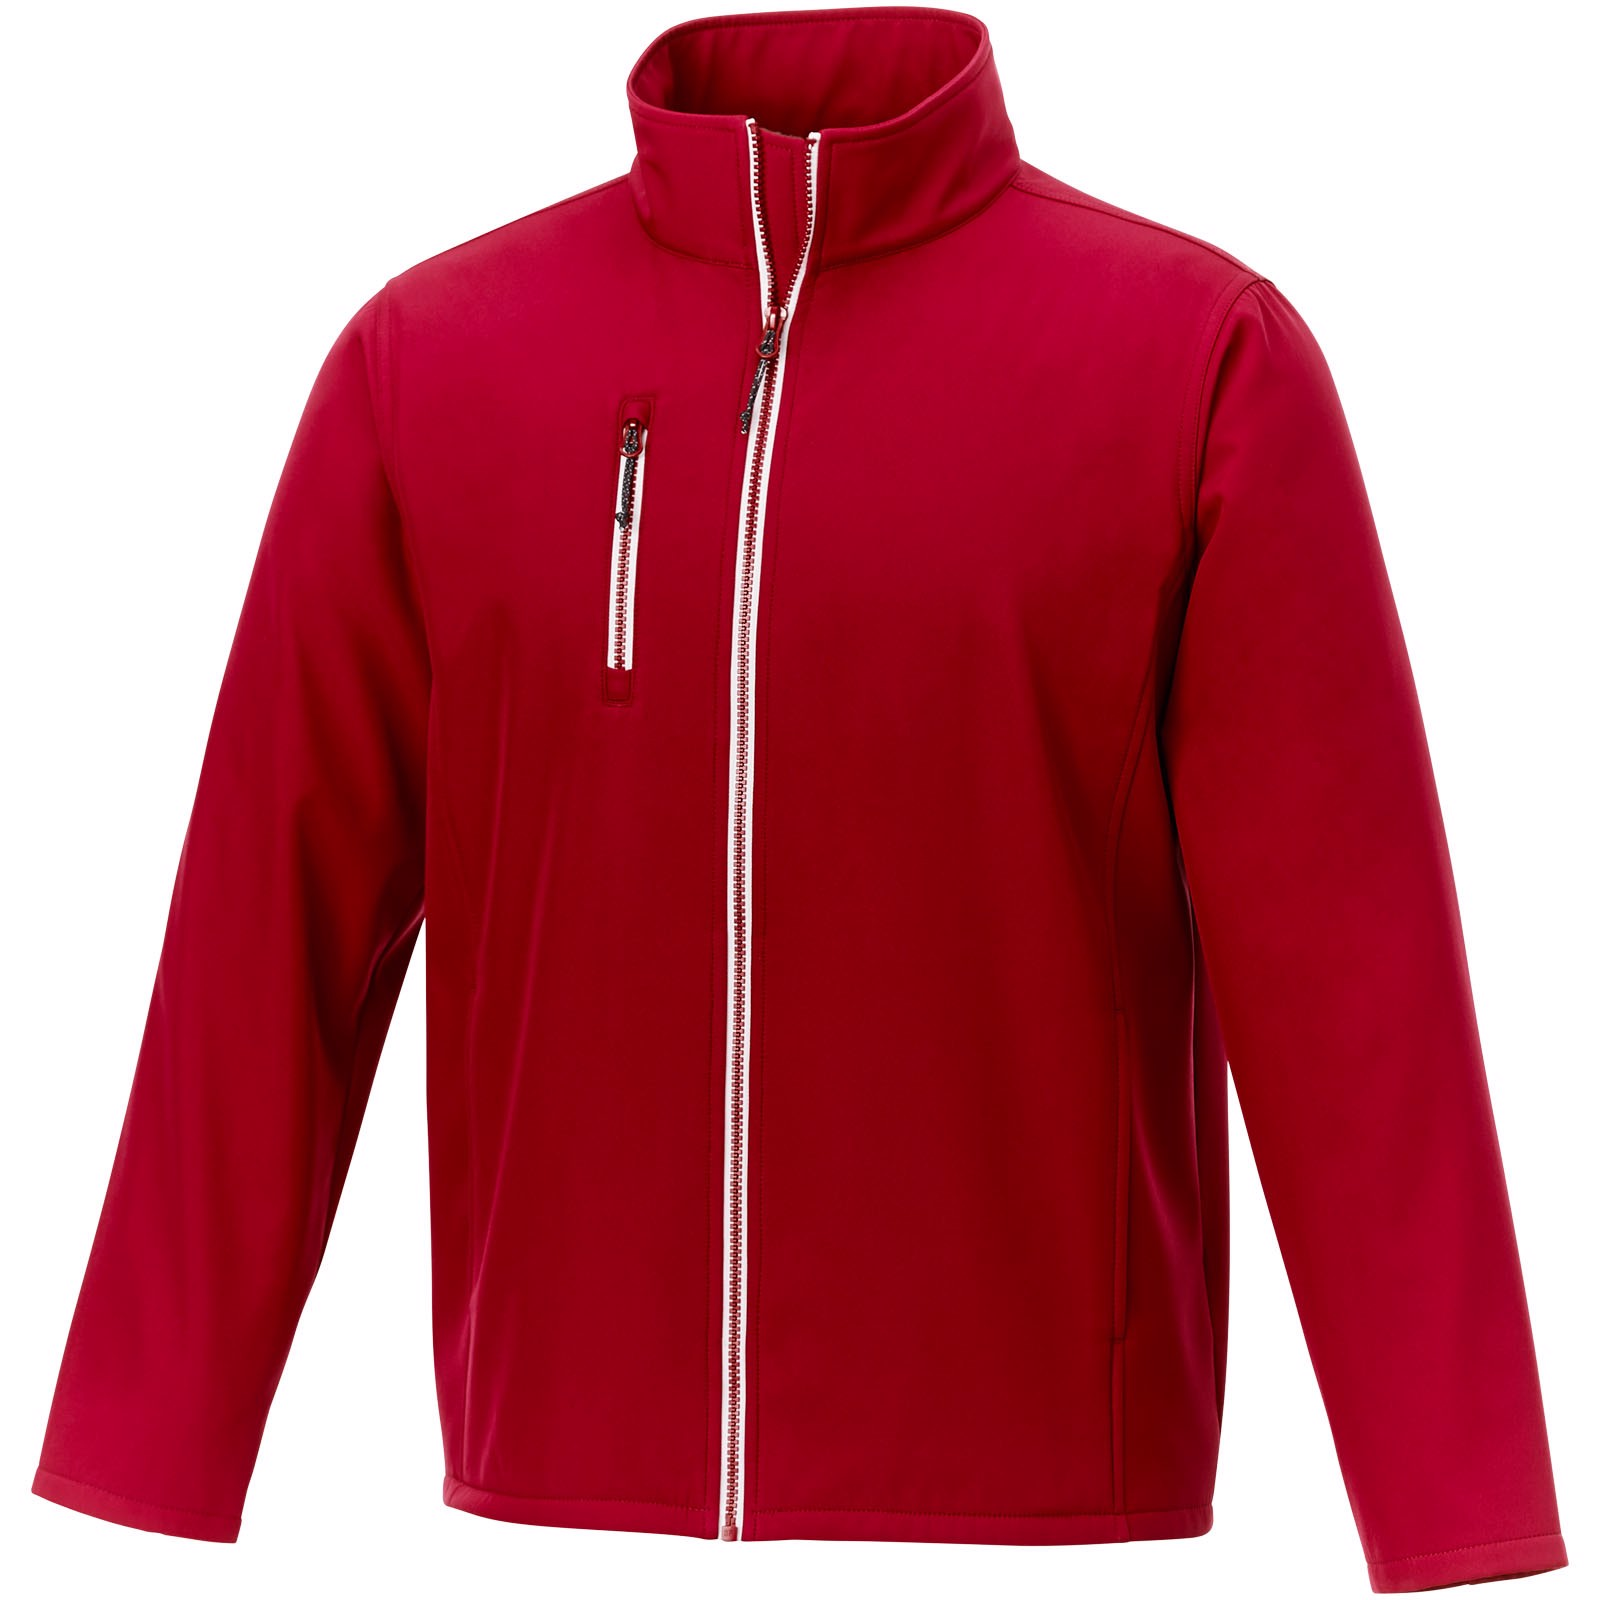 Orion men's softshell jacket - Red / 3XL